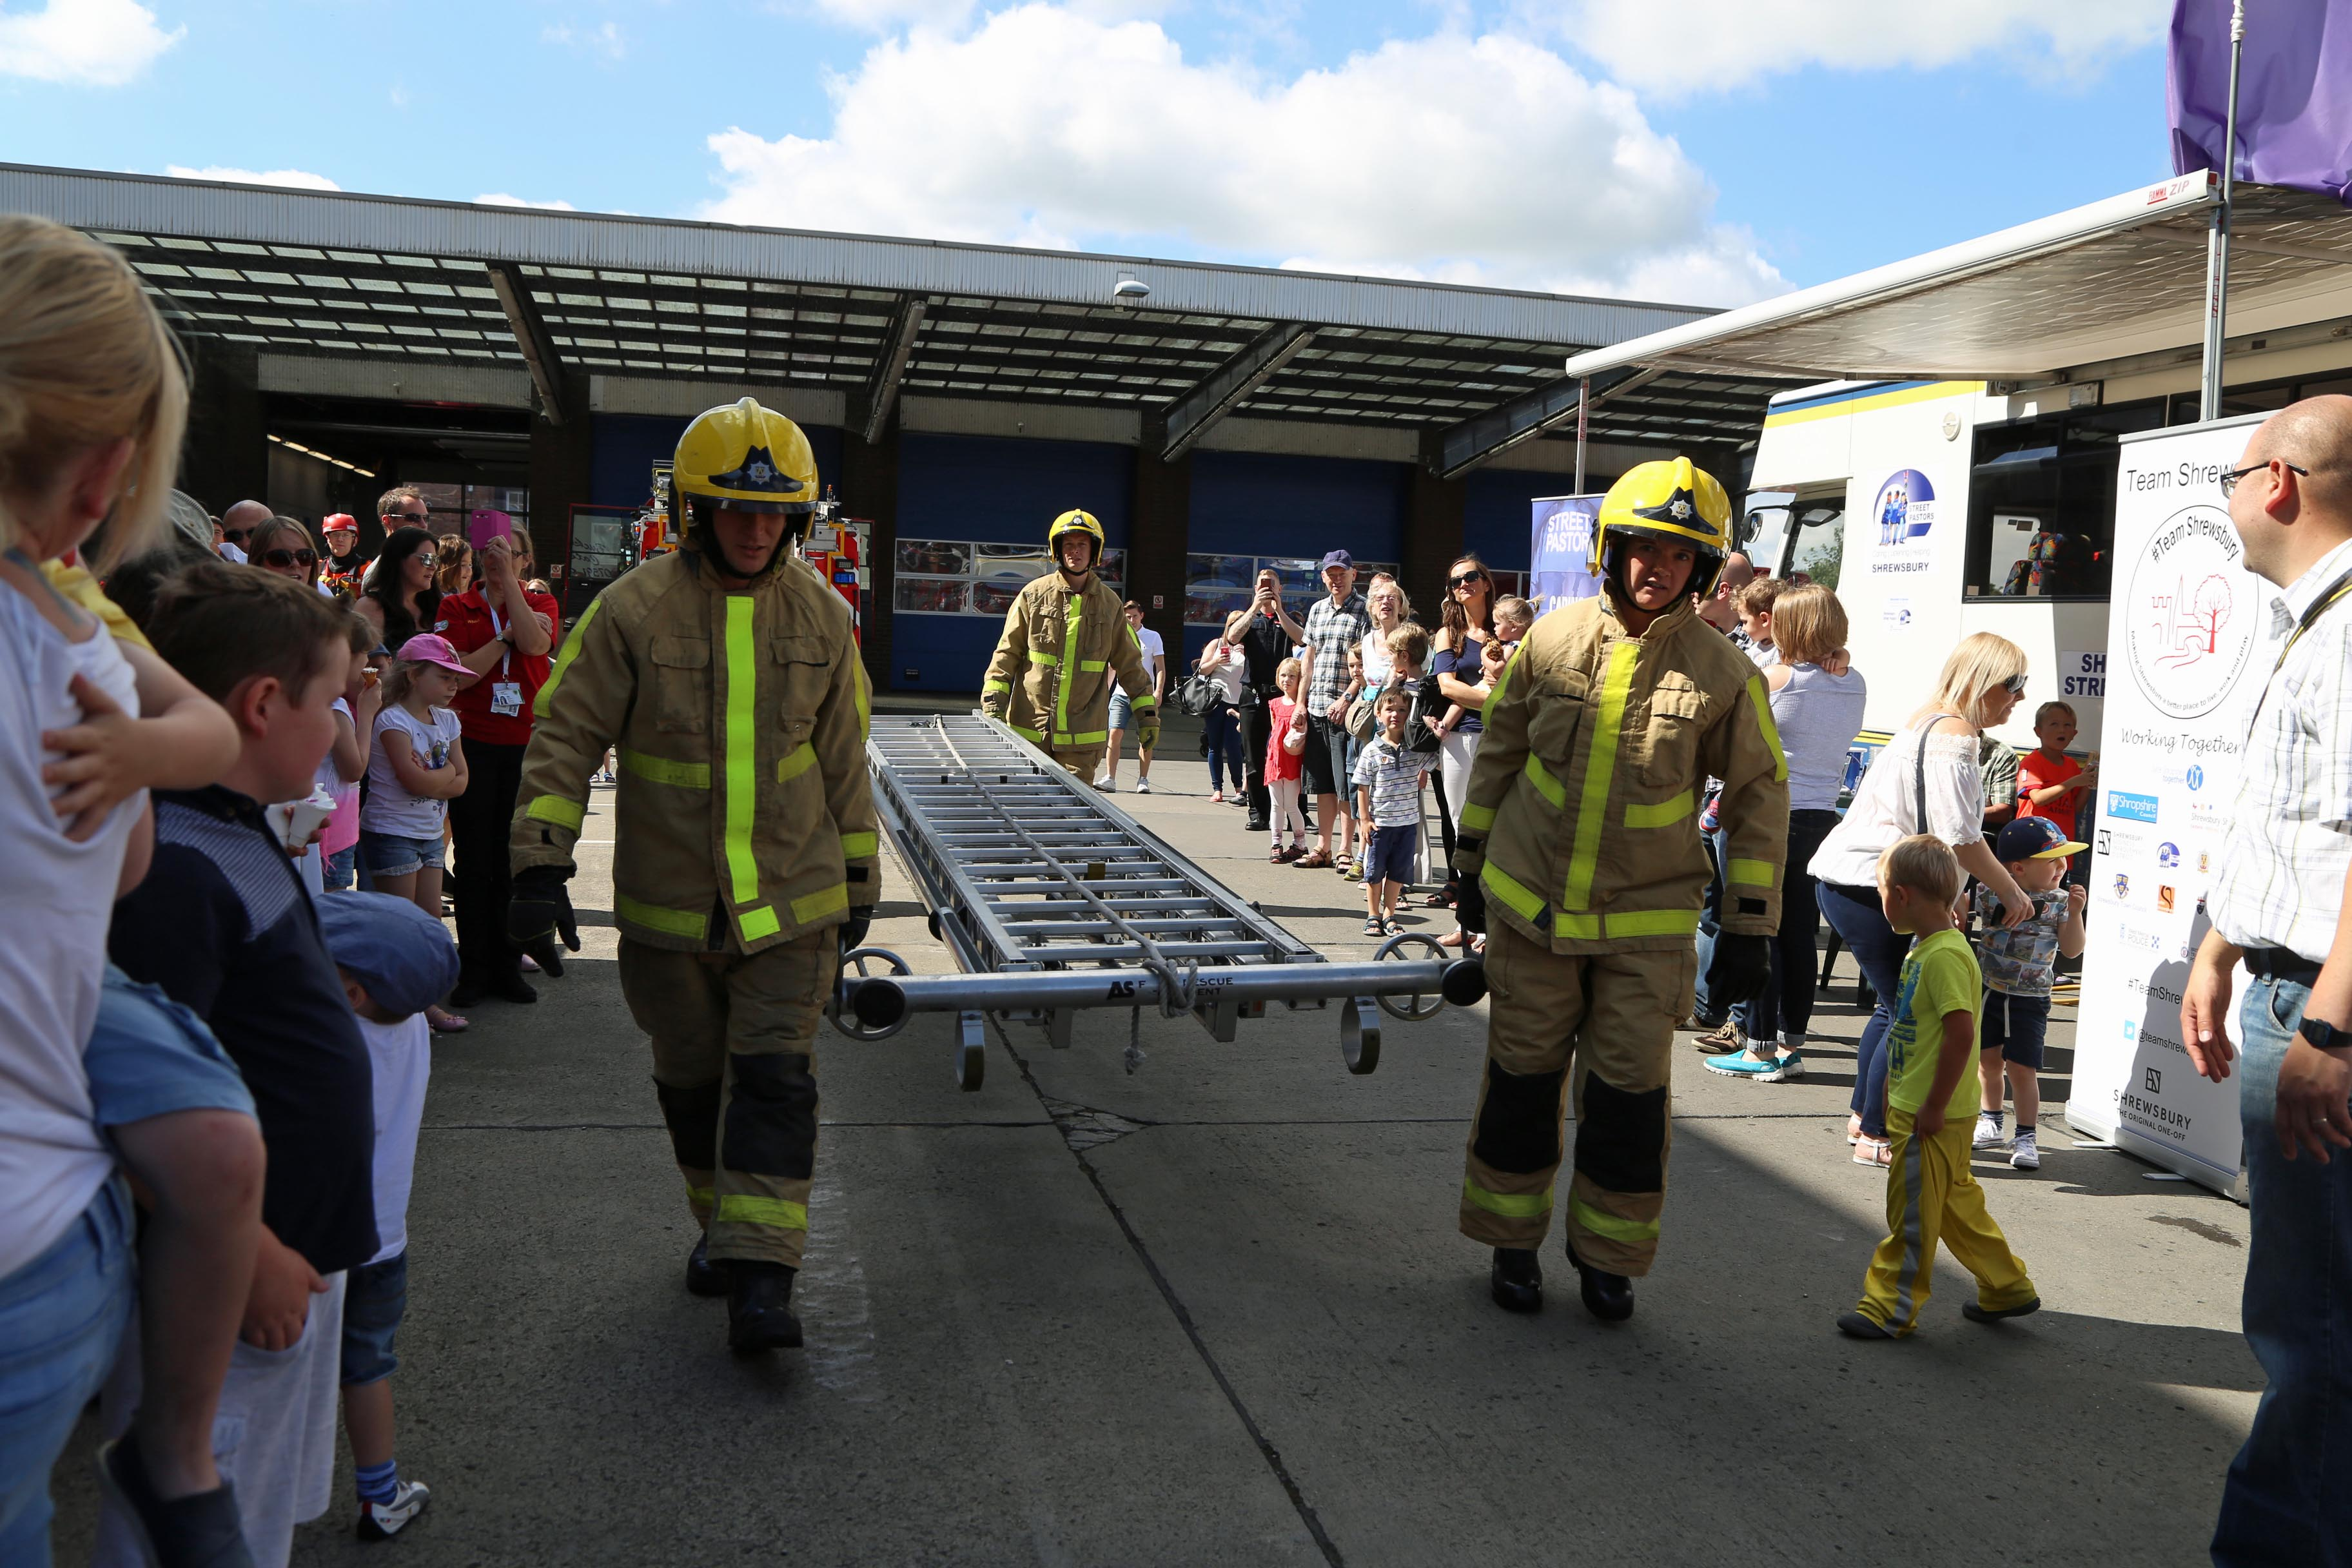 Firefighters gave a ladder skills display